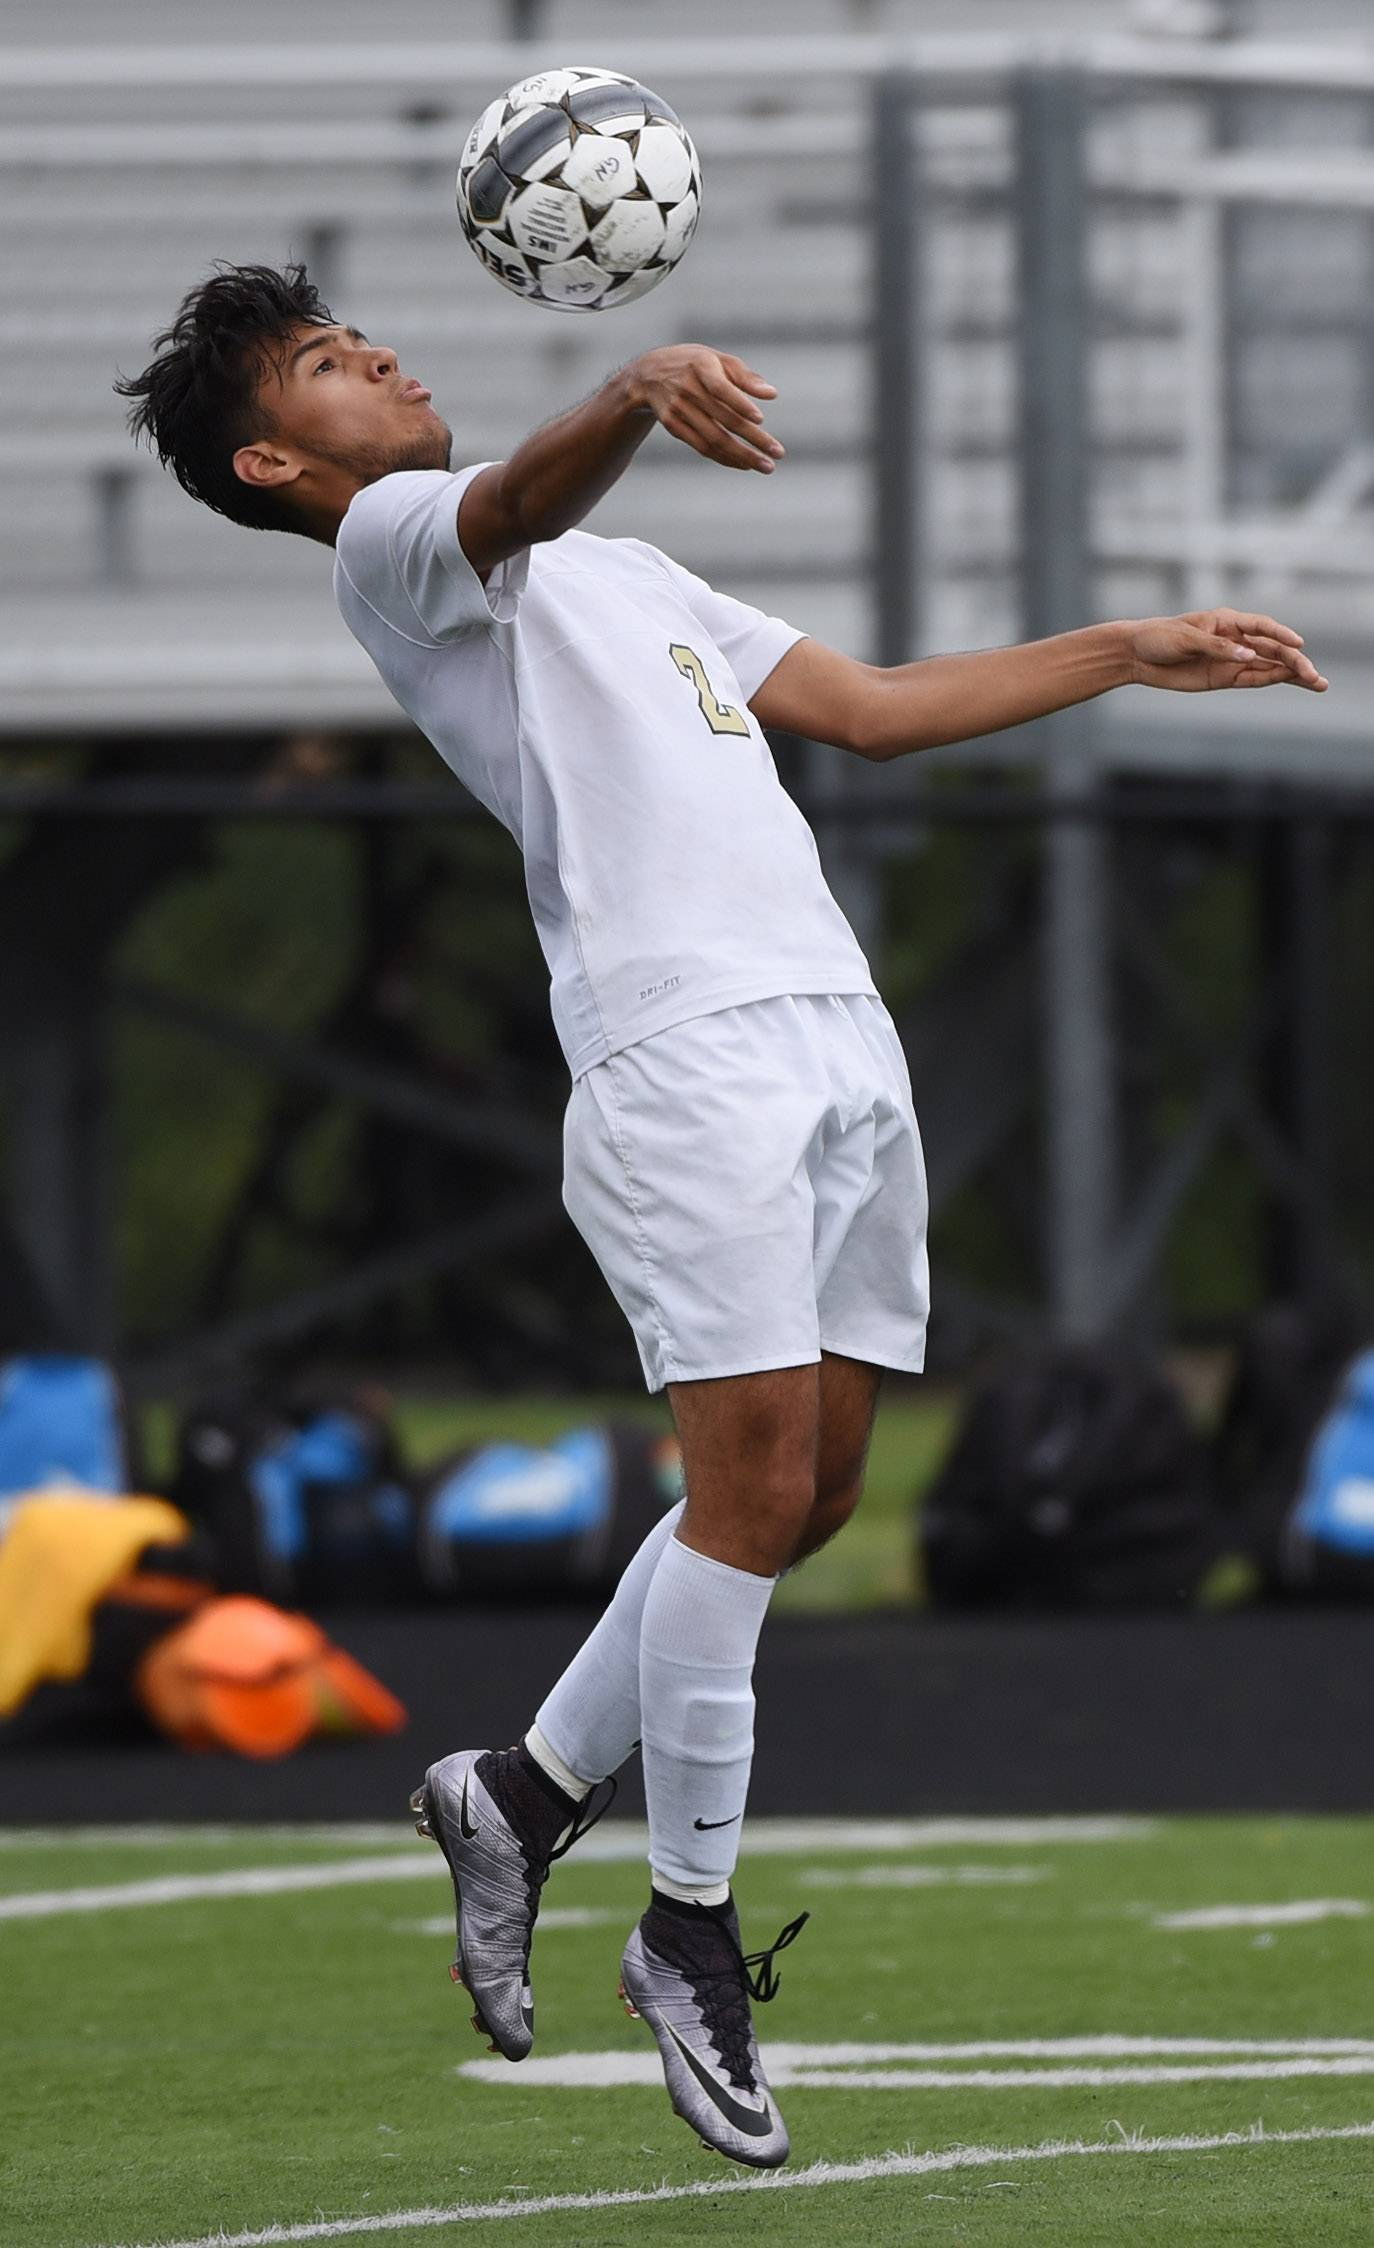 Grayslake North's Cristian Guerrero keeps the ball in front of himself during Saturday's soccer game against Warren.